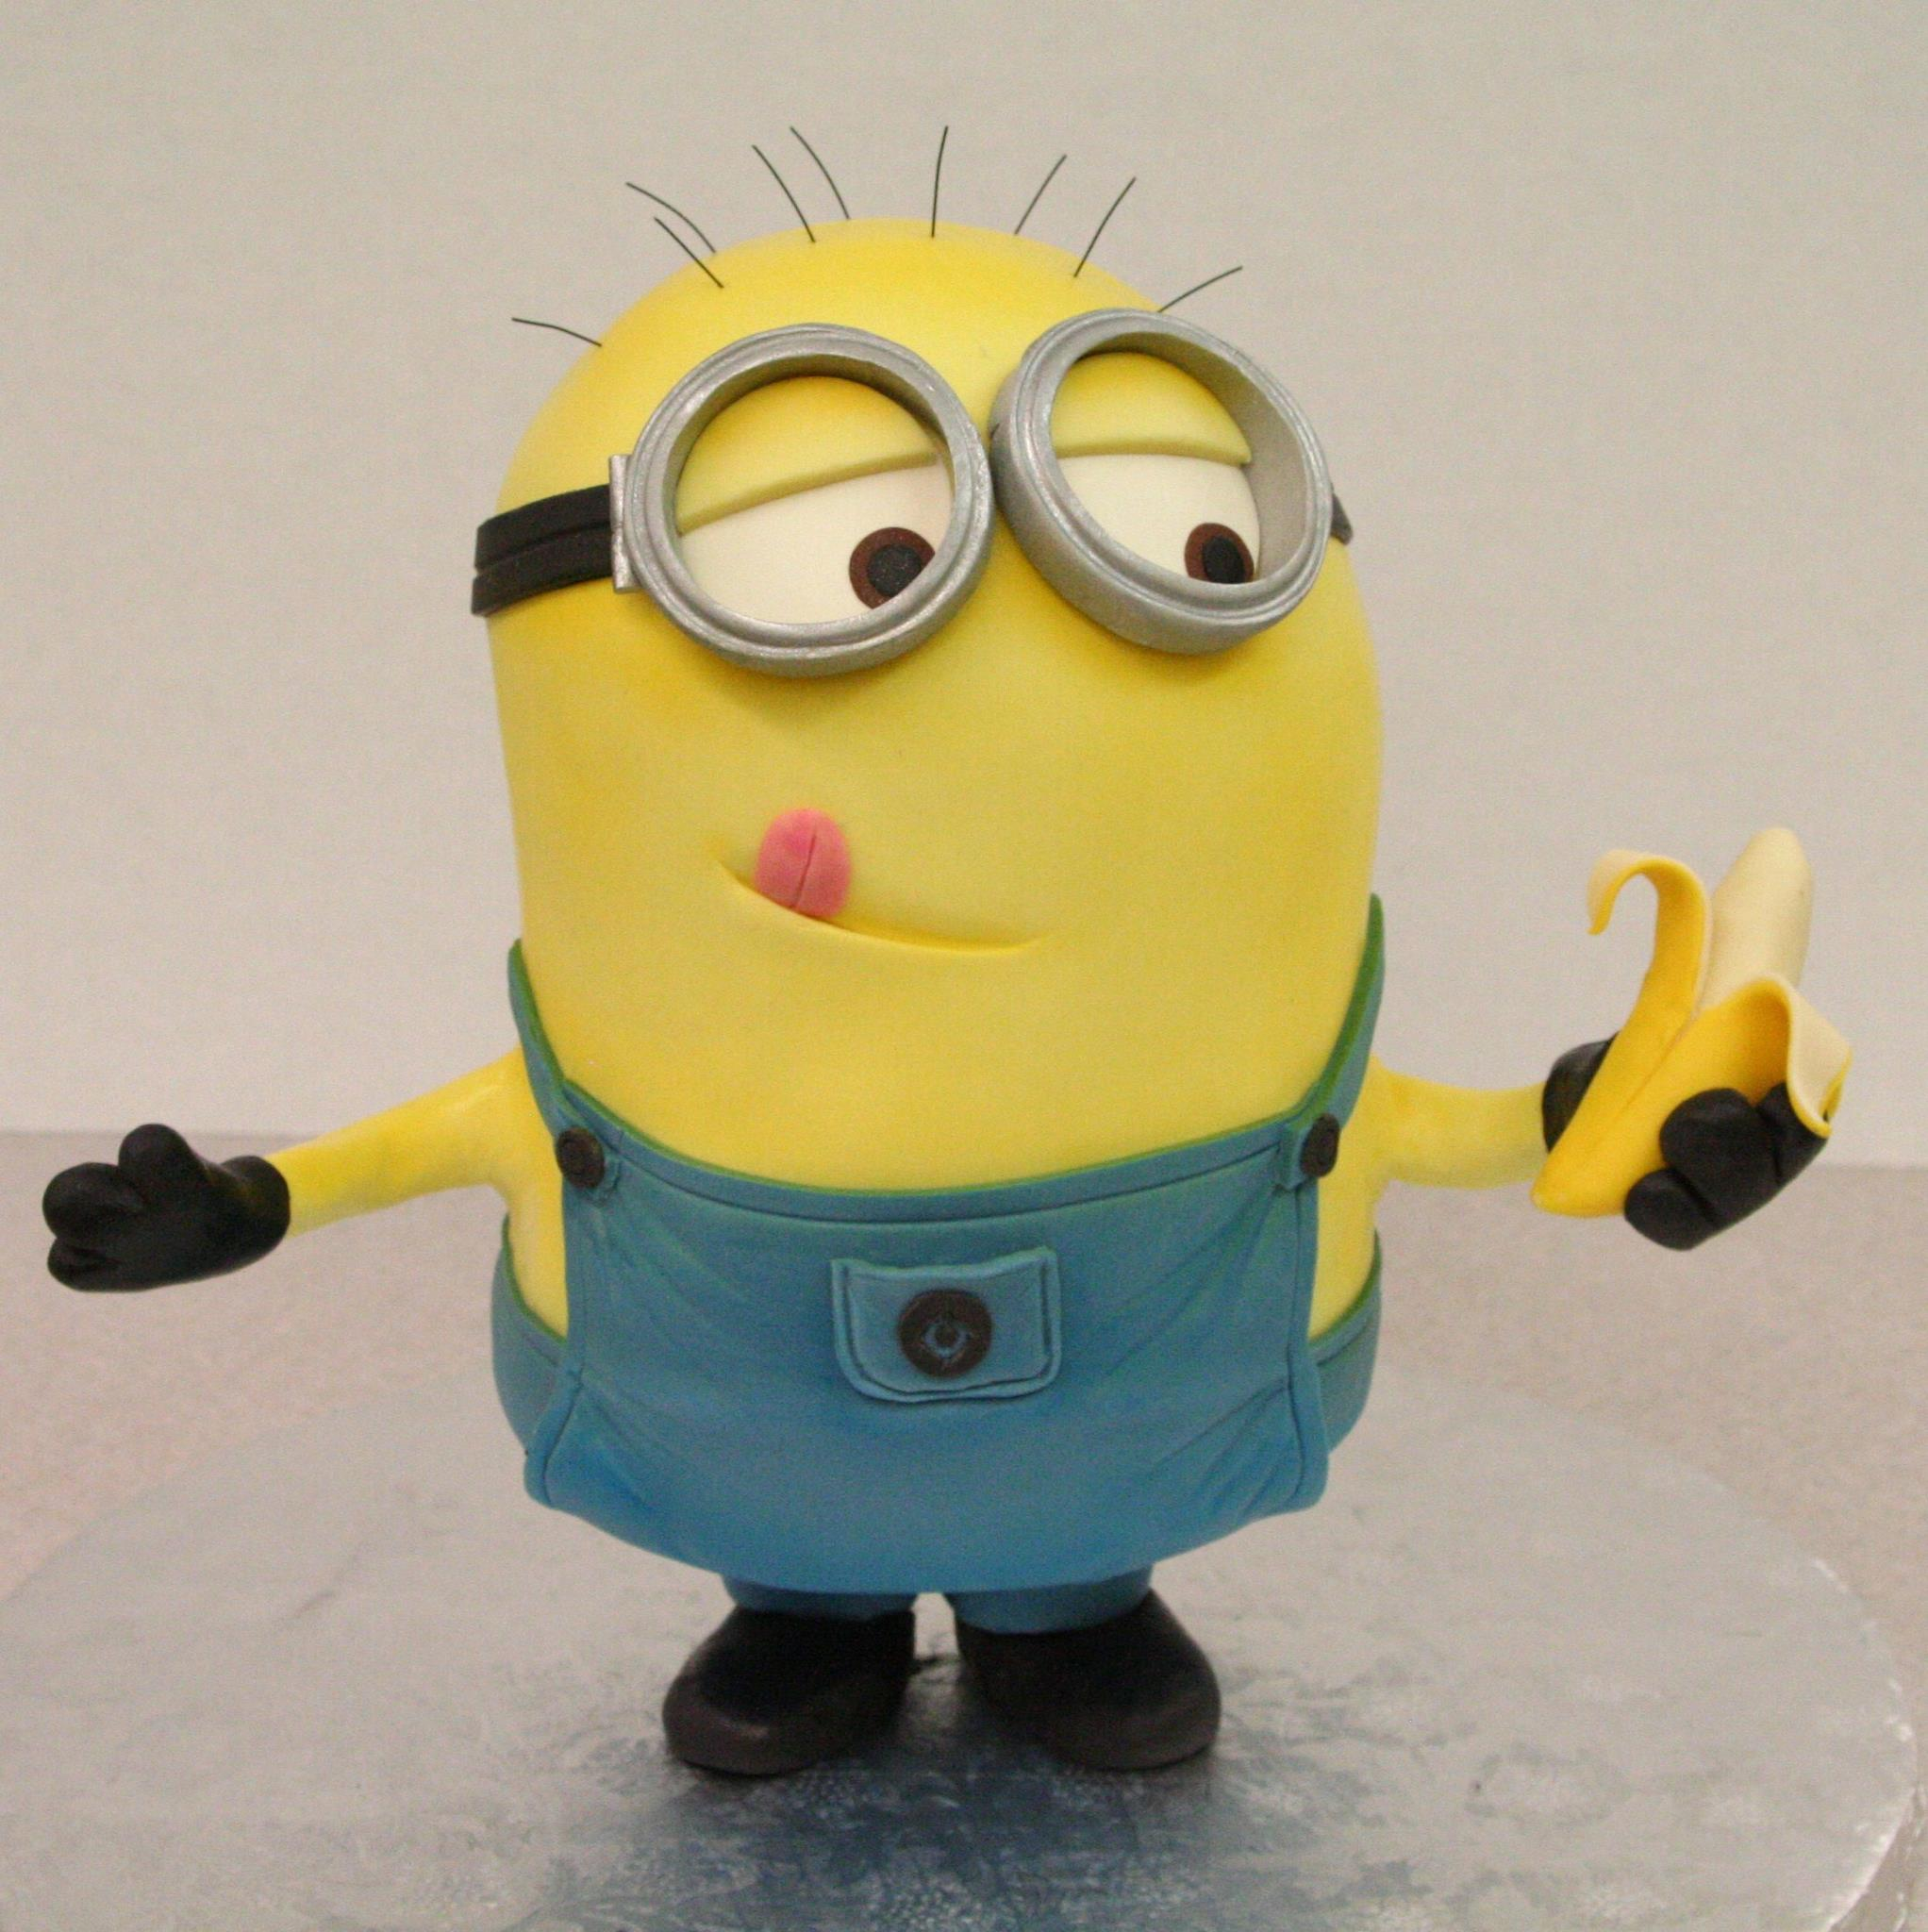 Minions Cake http://www.geeknative.com/39286/this-despicable-minion-is-a-banana-cake/